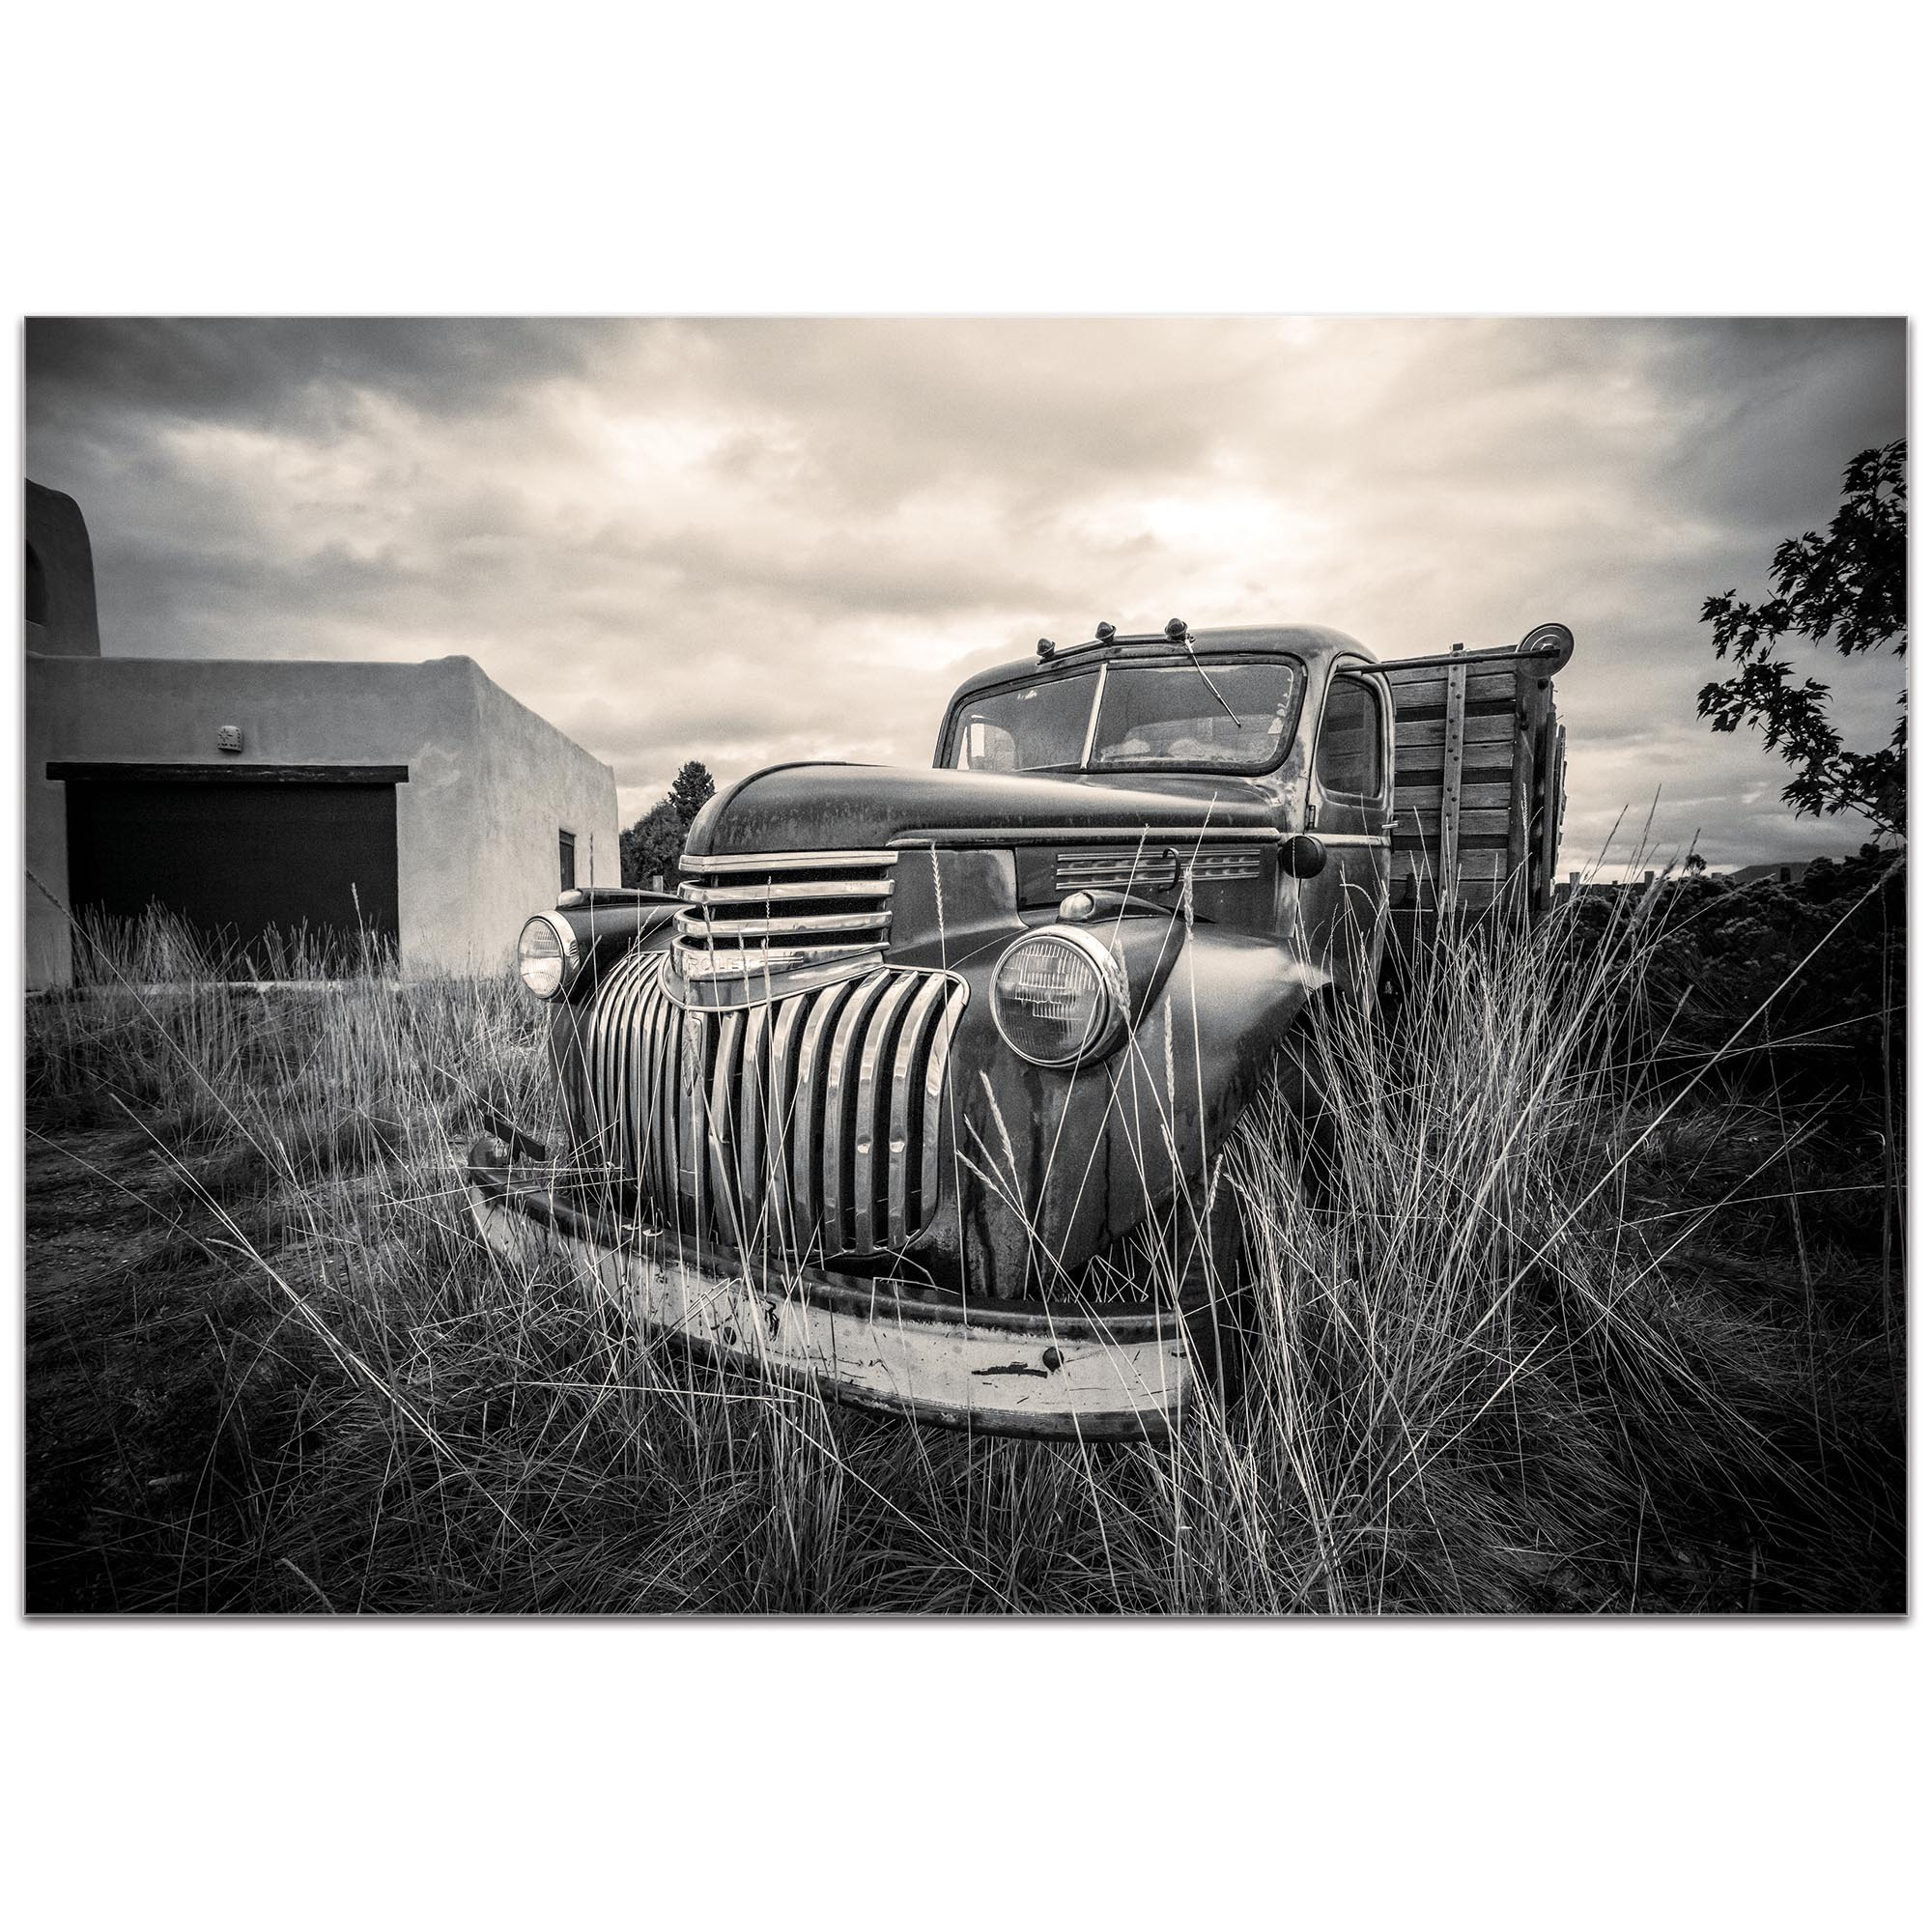 Americana Wall Art 'Farm Truck' - Classic Truck Decor on Metal or Plexiglass - Image 2